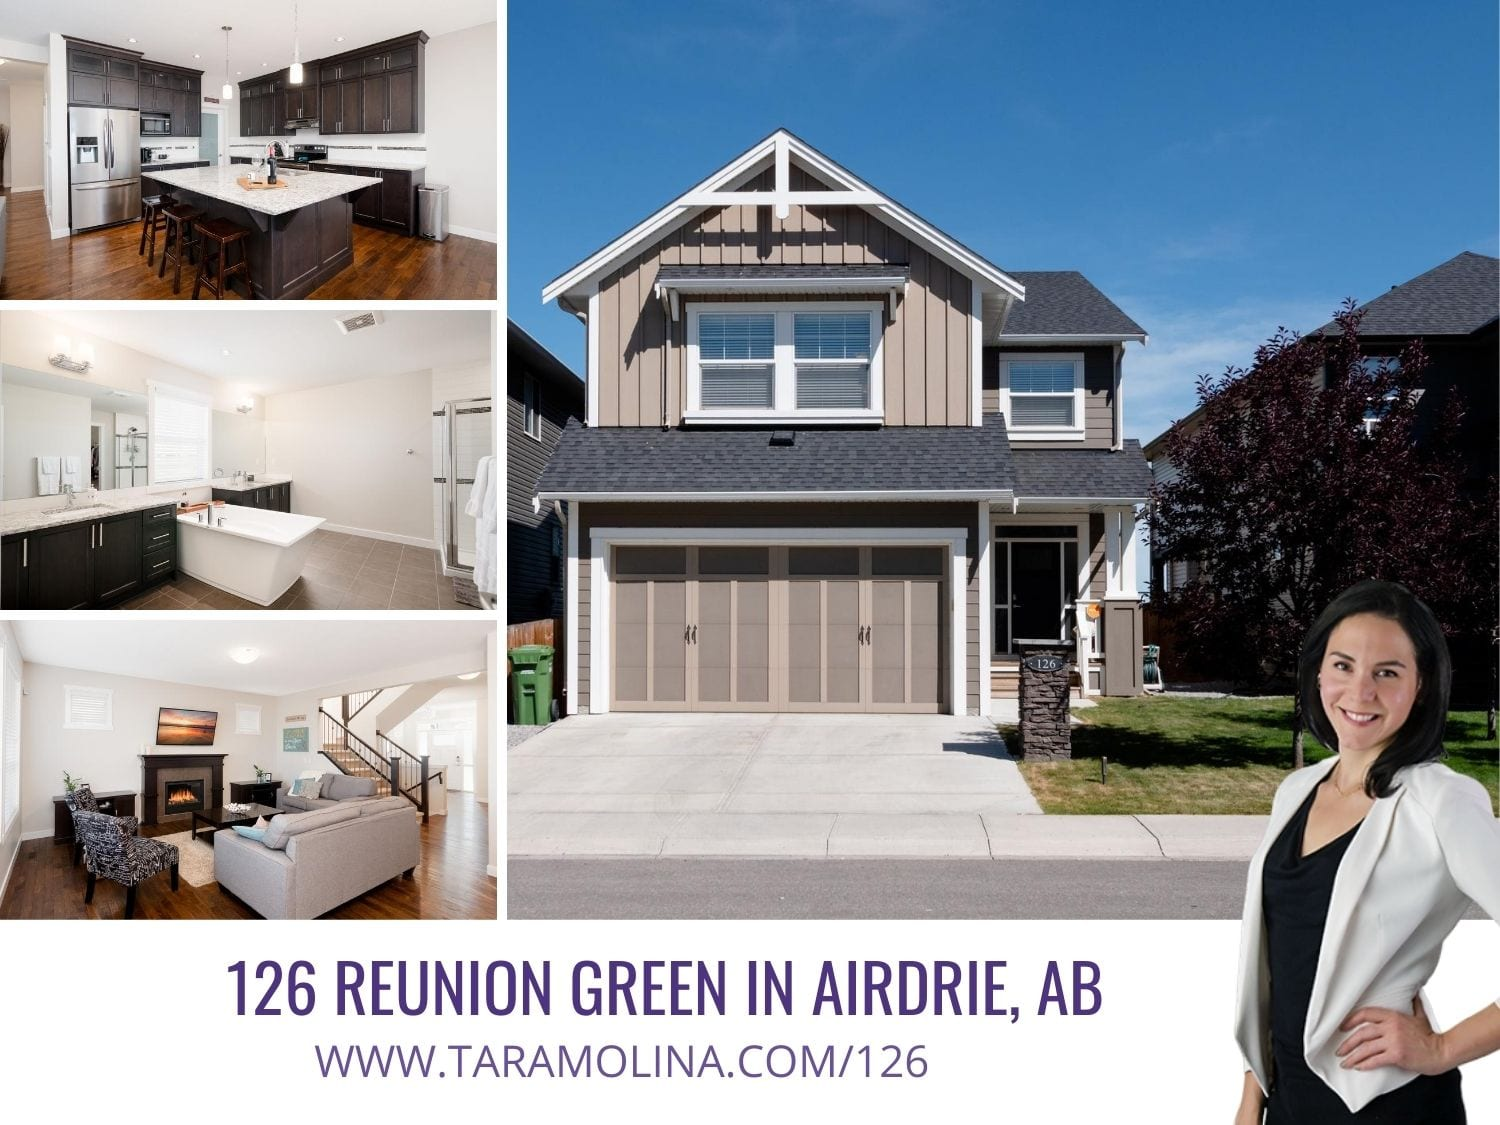 126 Reunion Green in airdrie, ab - Gallery Thumb (1)